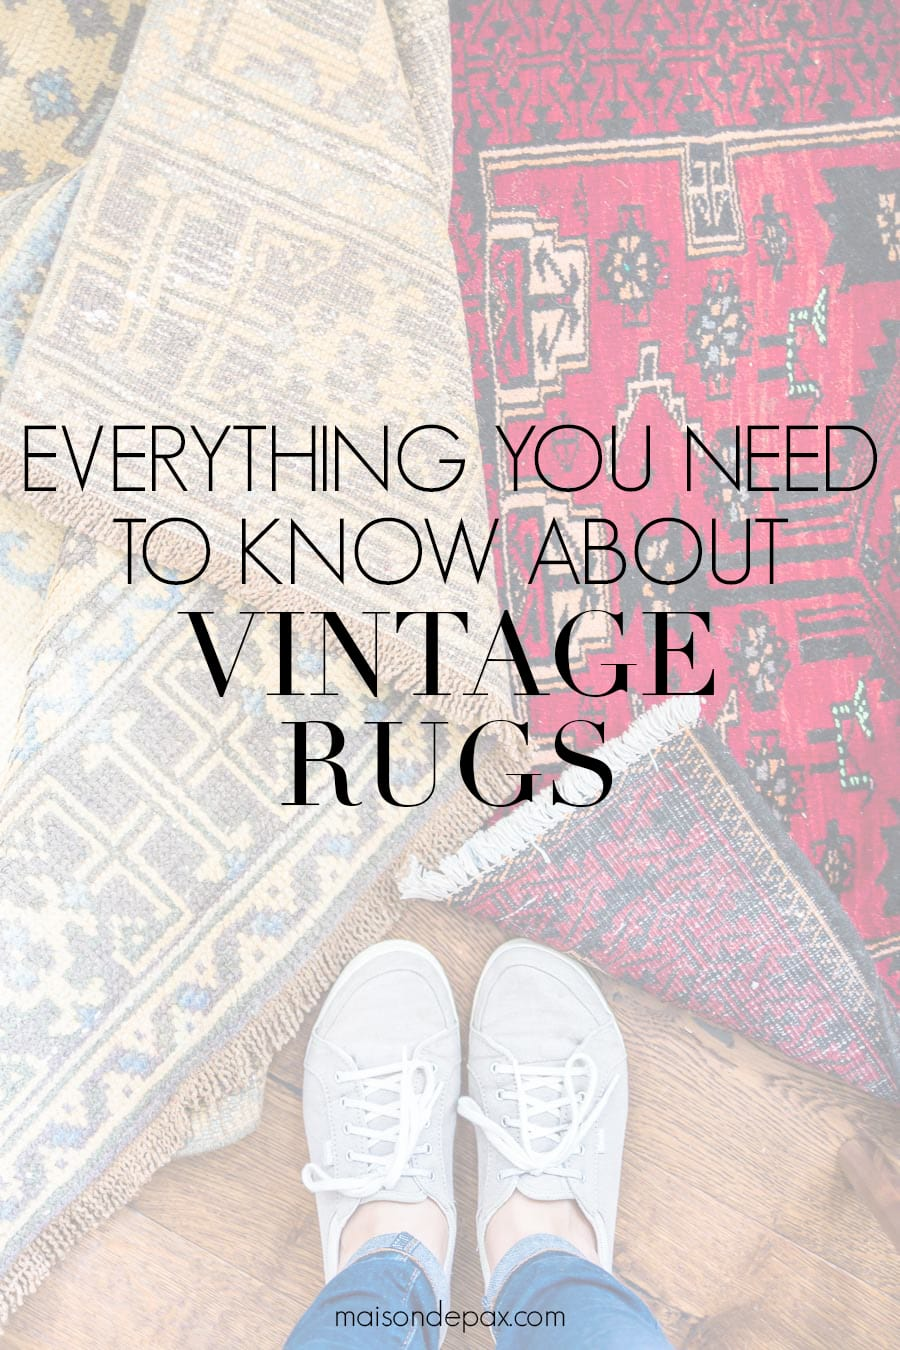 vintage rugs with overlay: everything you need to know about vintage rugs | Maison de Pax